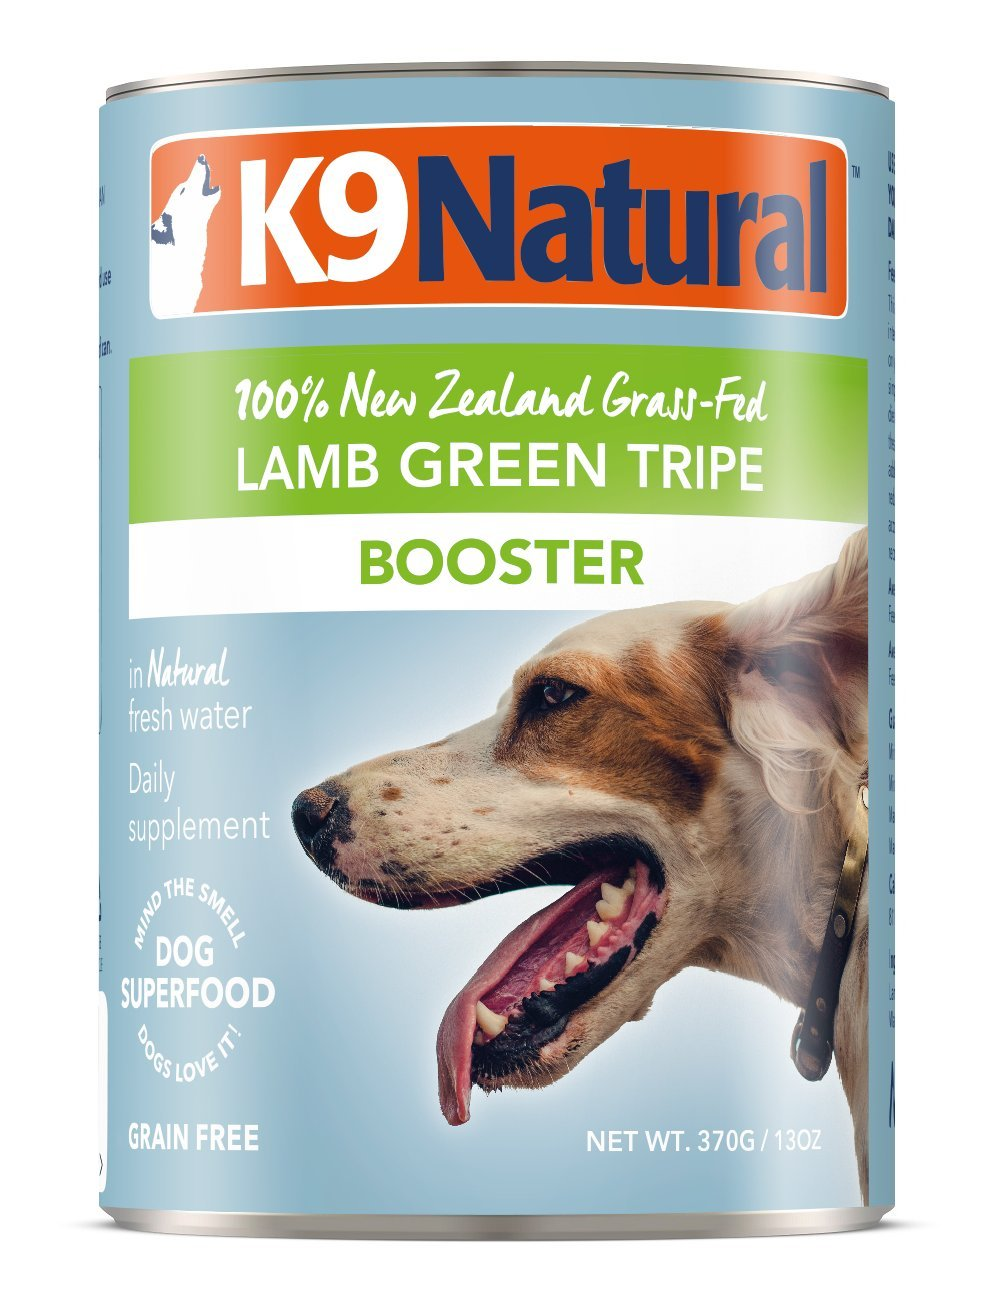 K9 Natural BPA-Free & Gelatin-Free Canned Dog Food Supplement Booster, Lamb Green Tripe 13oz 12 Pack by K9 Natural